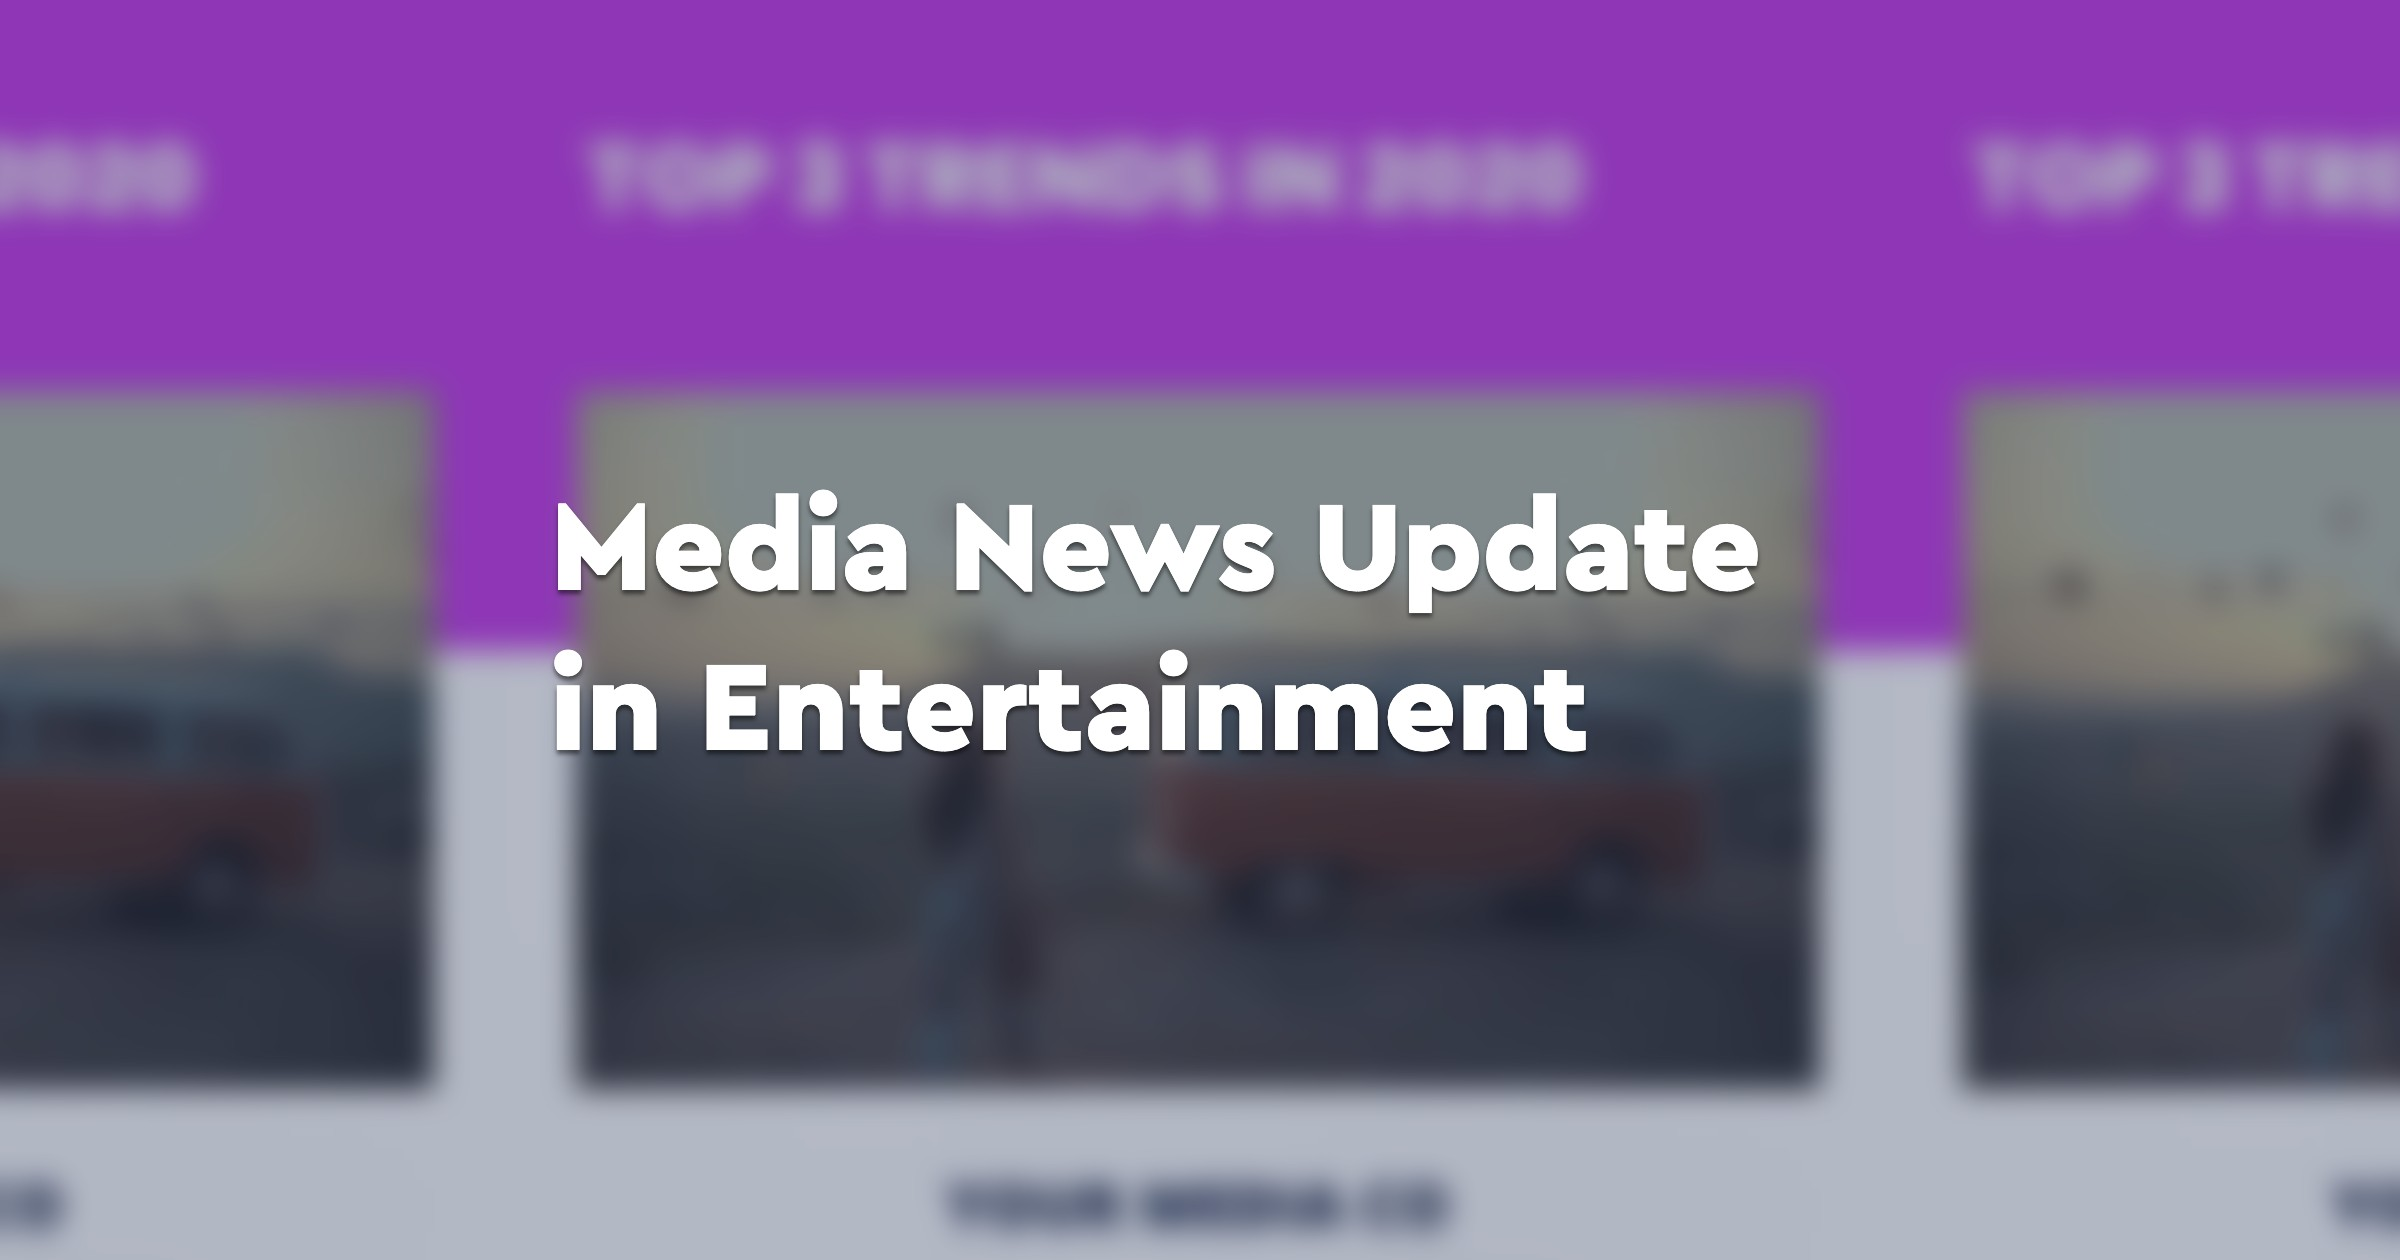 Media News Update in Entertainment